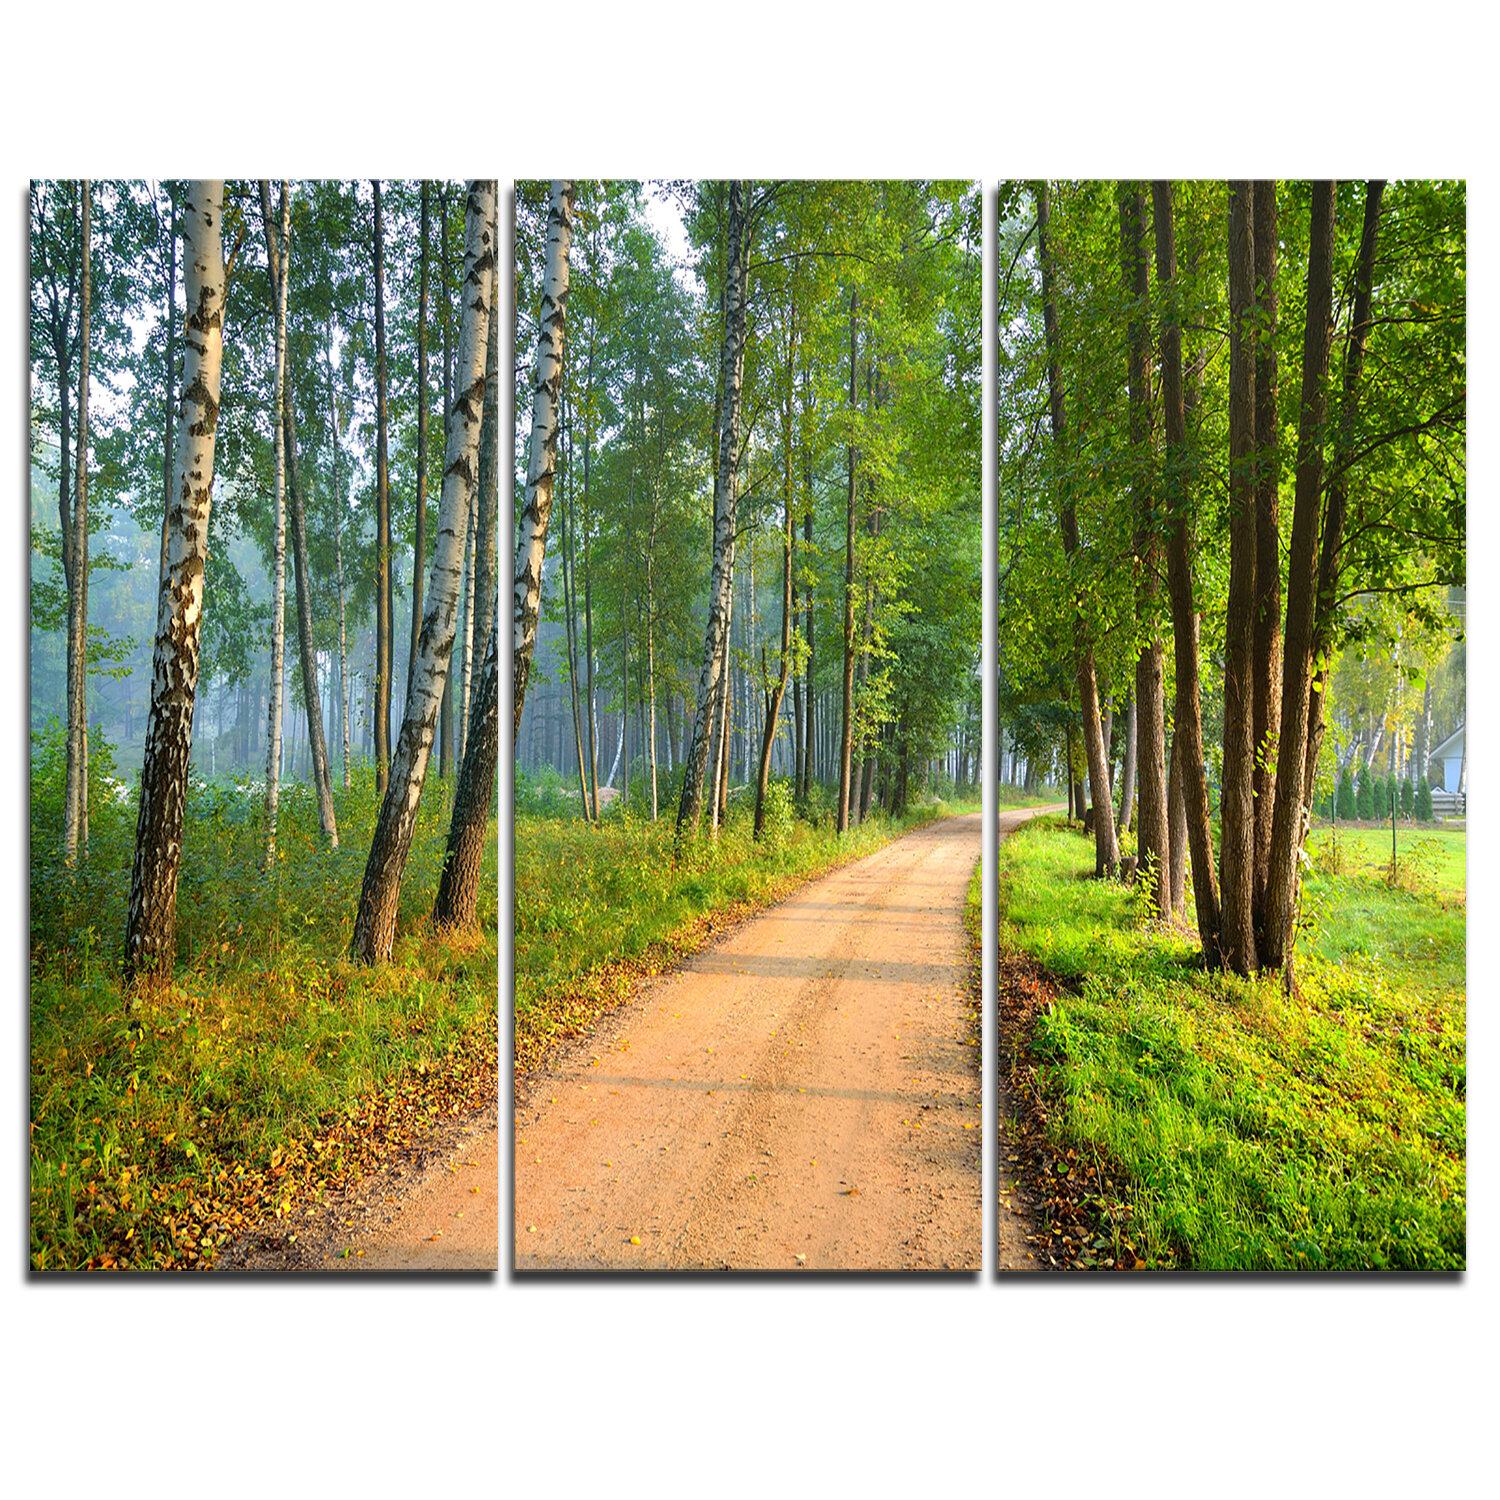 Designart Road In Green Morning Forest 3 Piece Graphic Art On Wrapped Canvas Set Wayfair